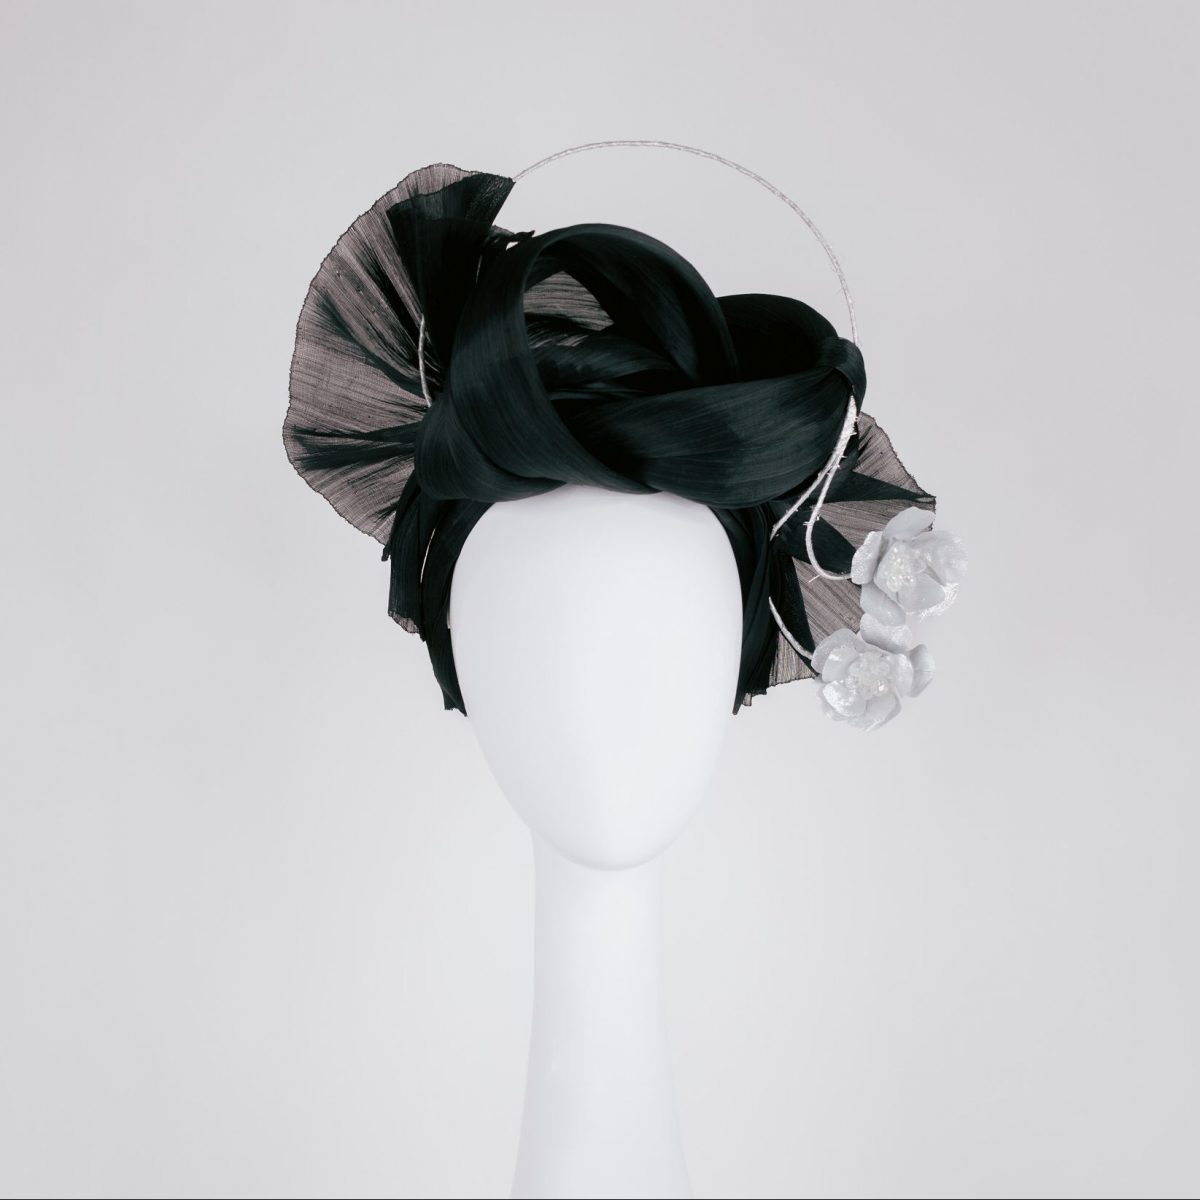 modern millinery - unique designs in black